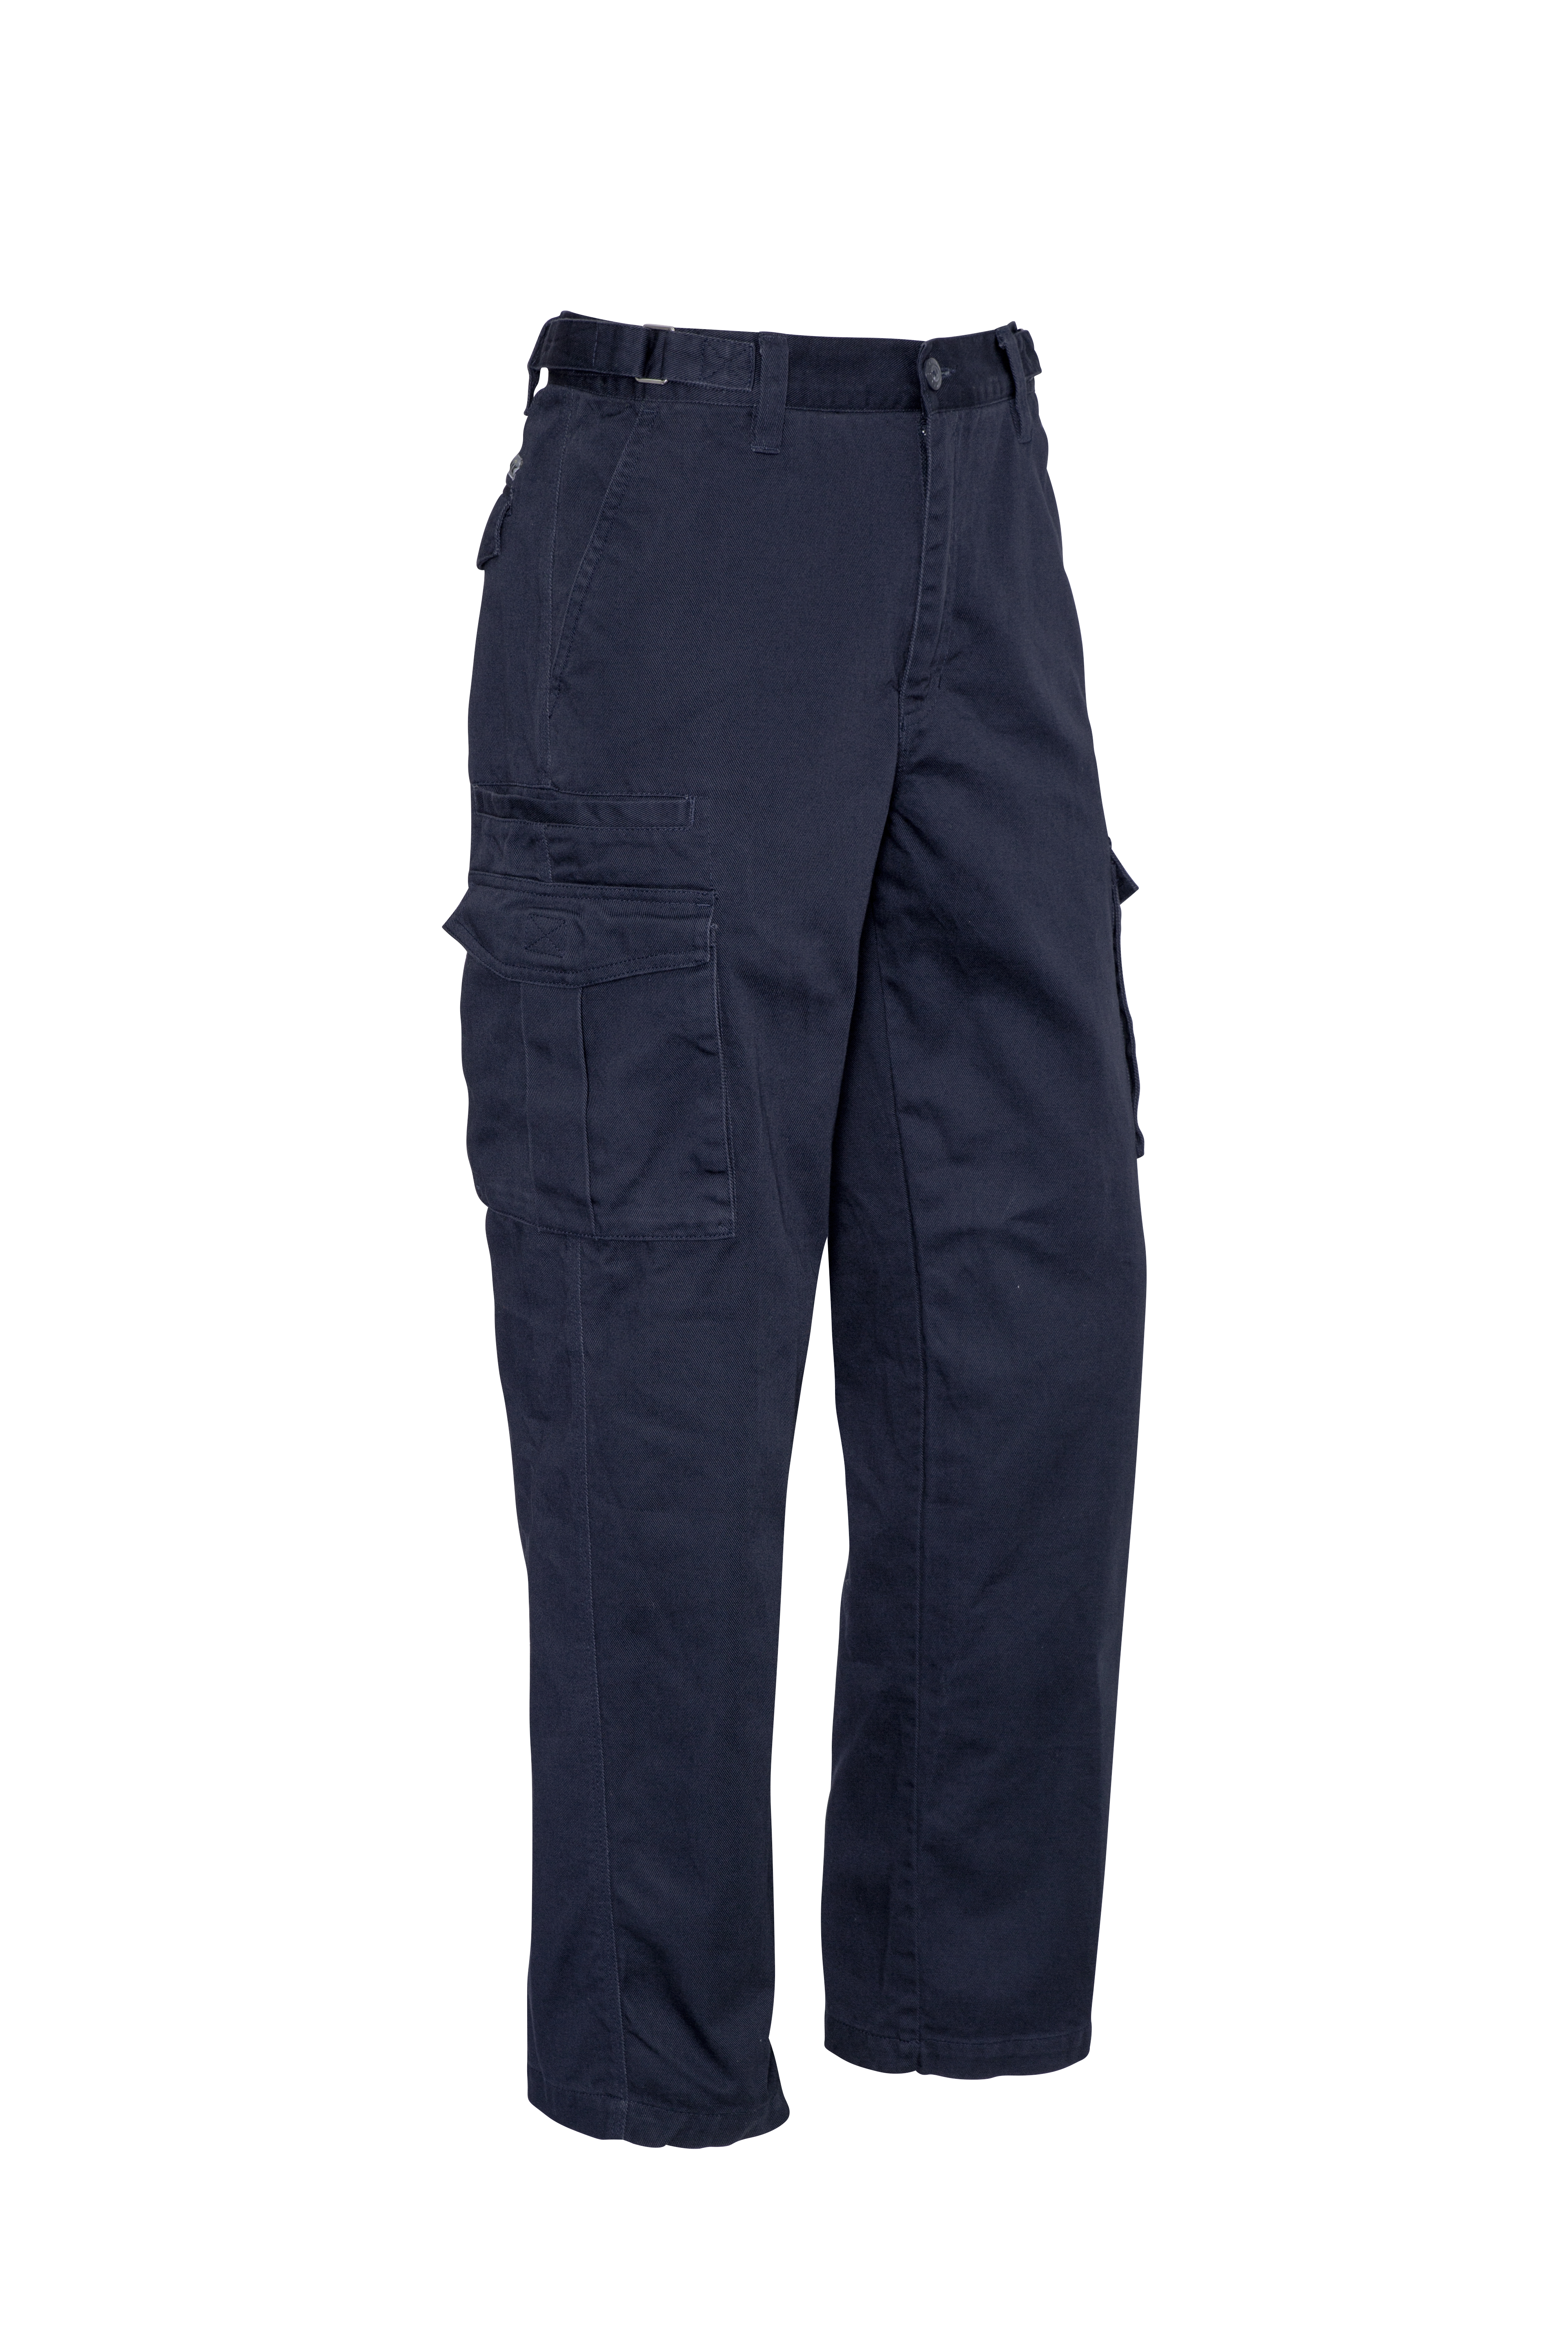 Mens Basic Cargo Pant (Regular) navy